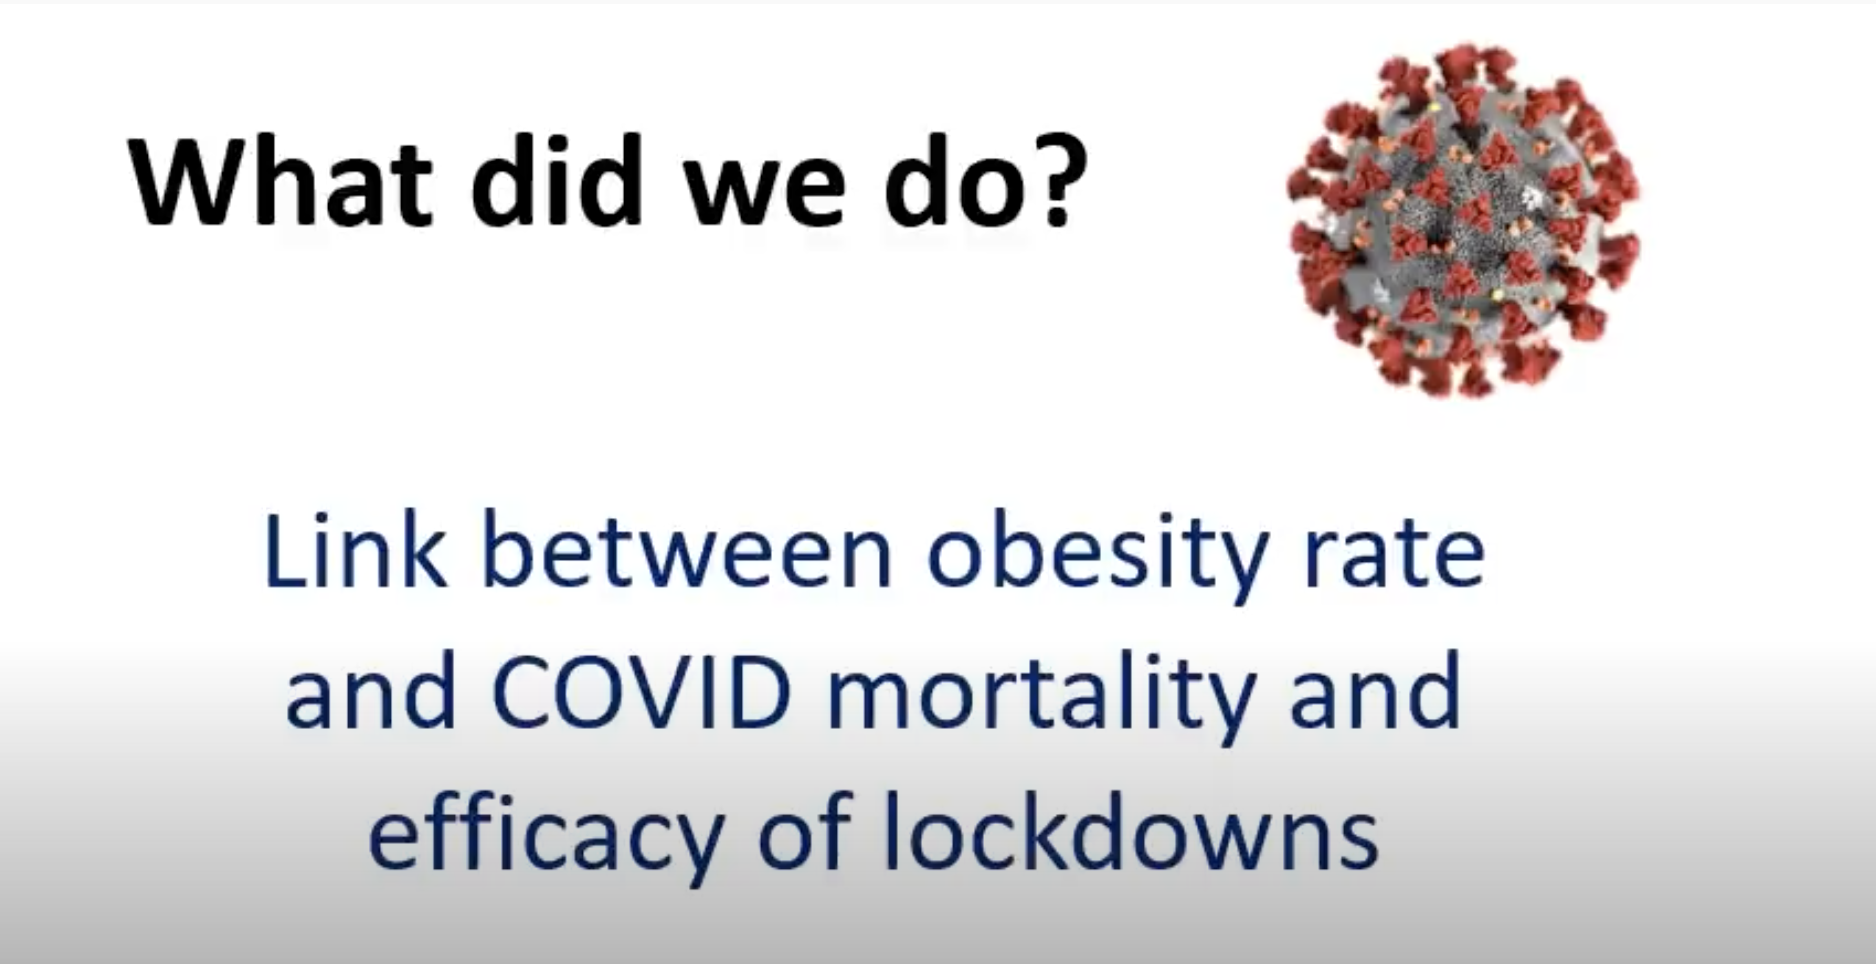 Link Between Obesity Rate and COVID Mortality and Efficacy of Lockdowns